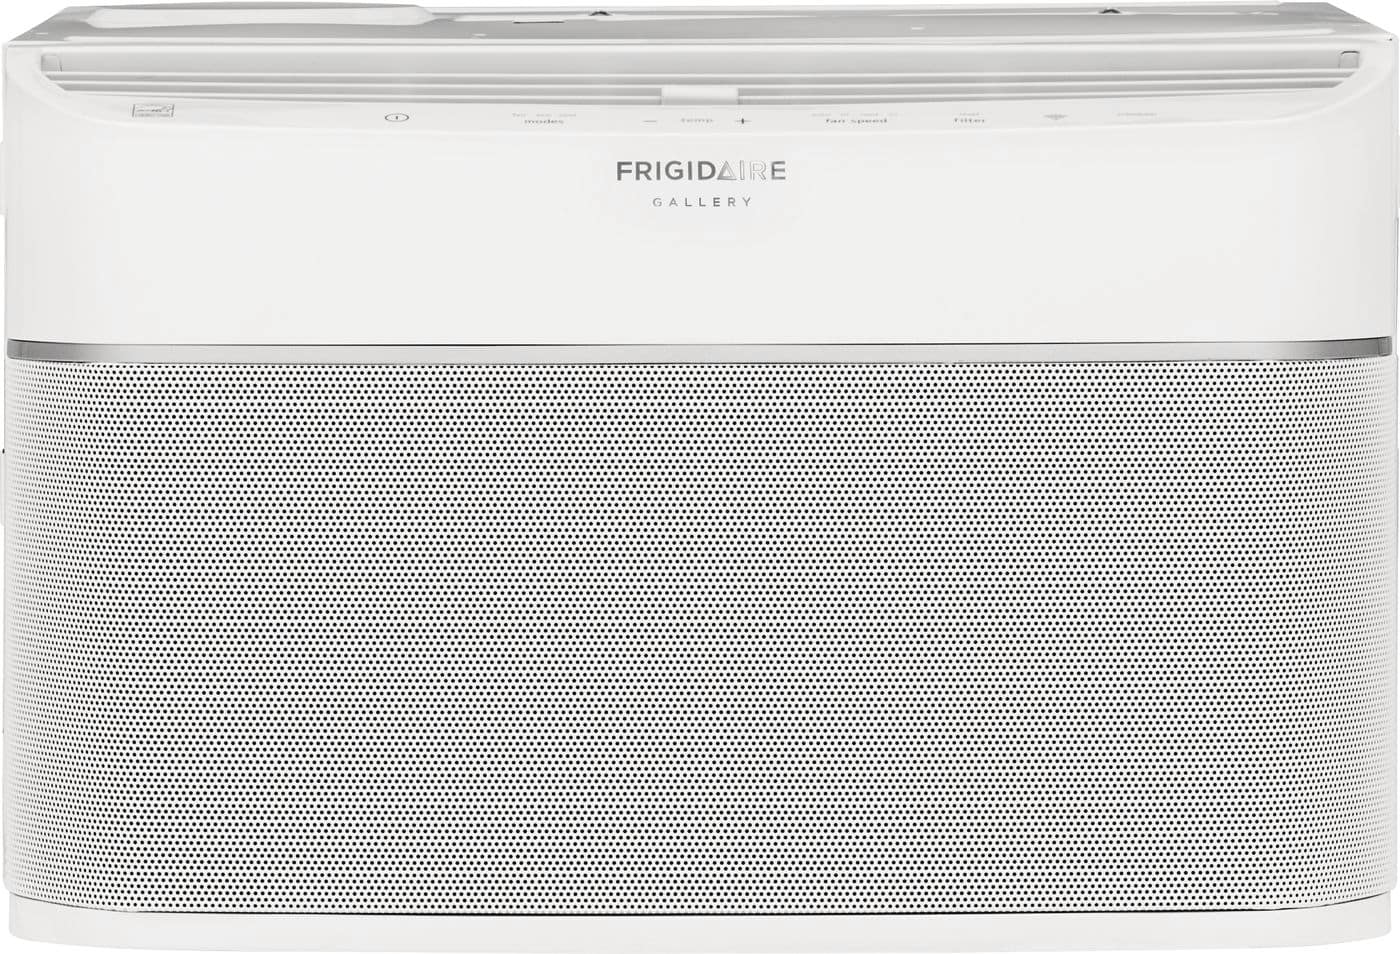 Frigidaire 12,000 BTU Cool Connect™ Smart Room Air Conditioner with Wifi Control